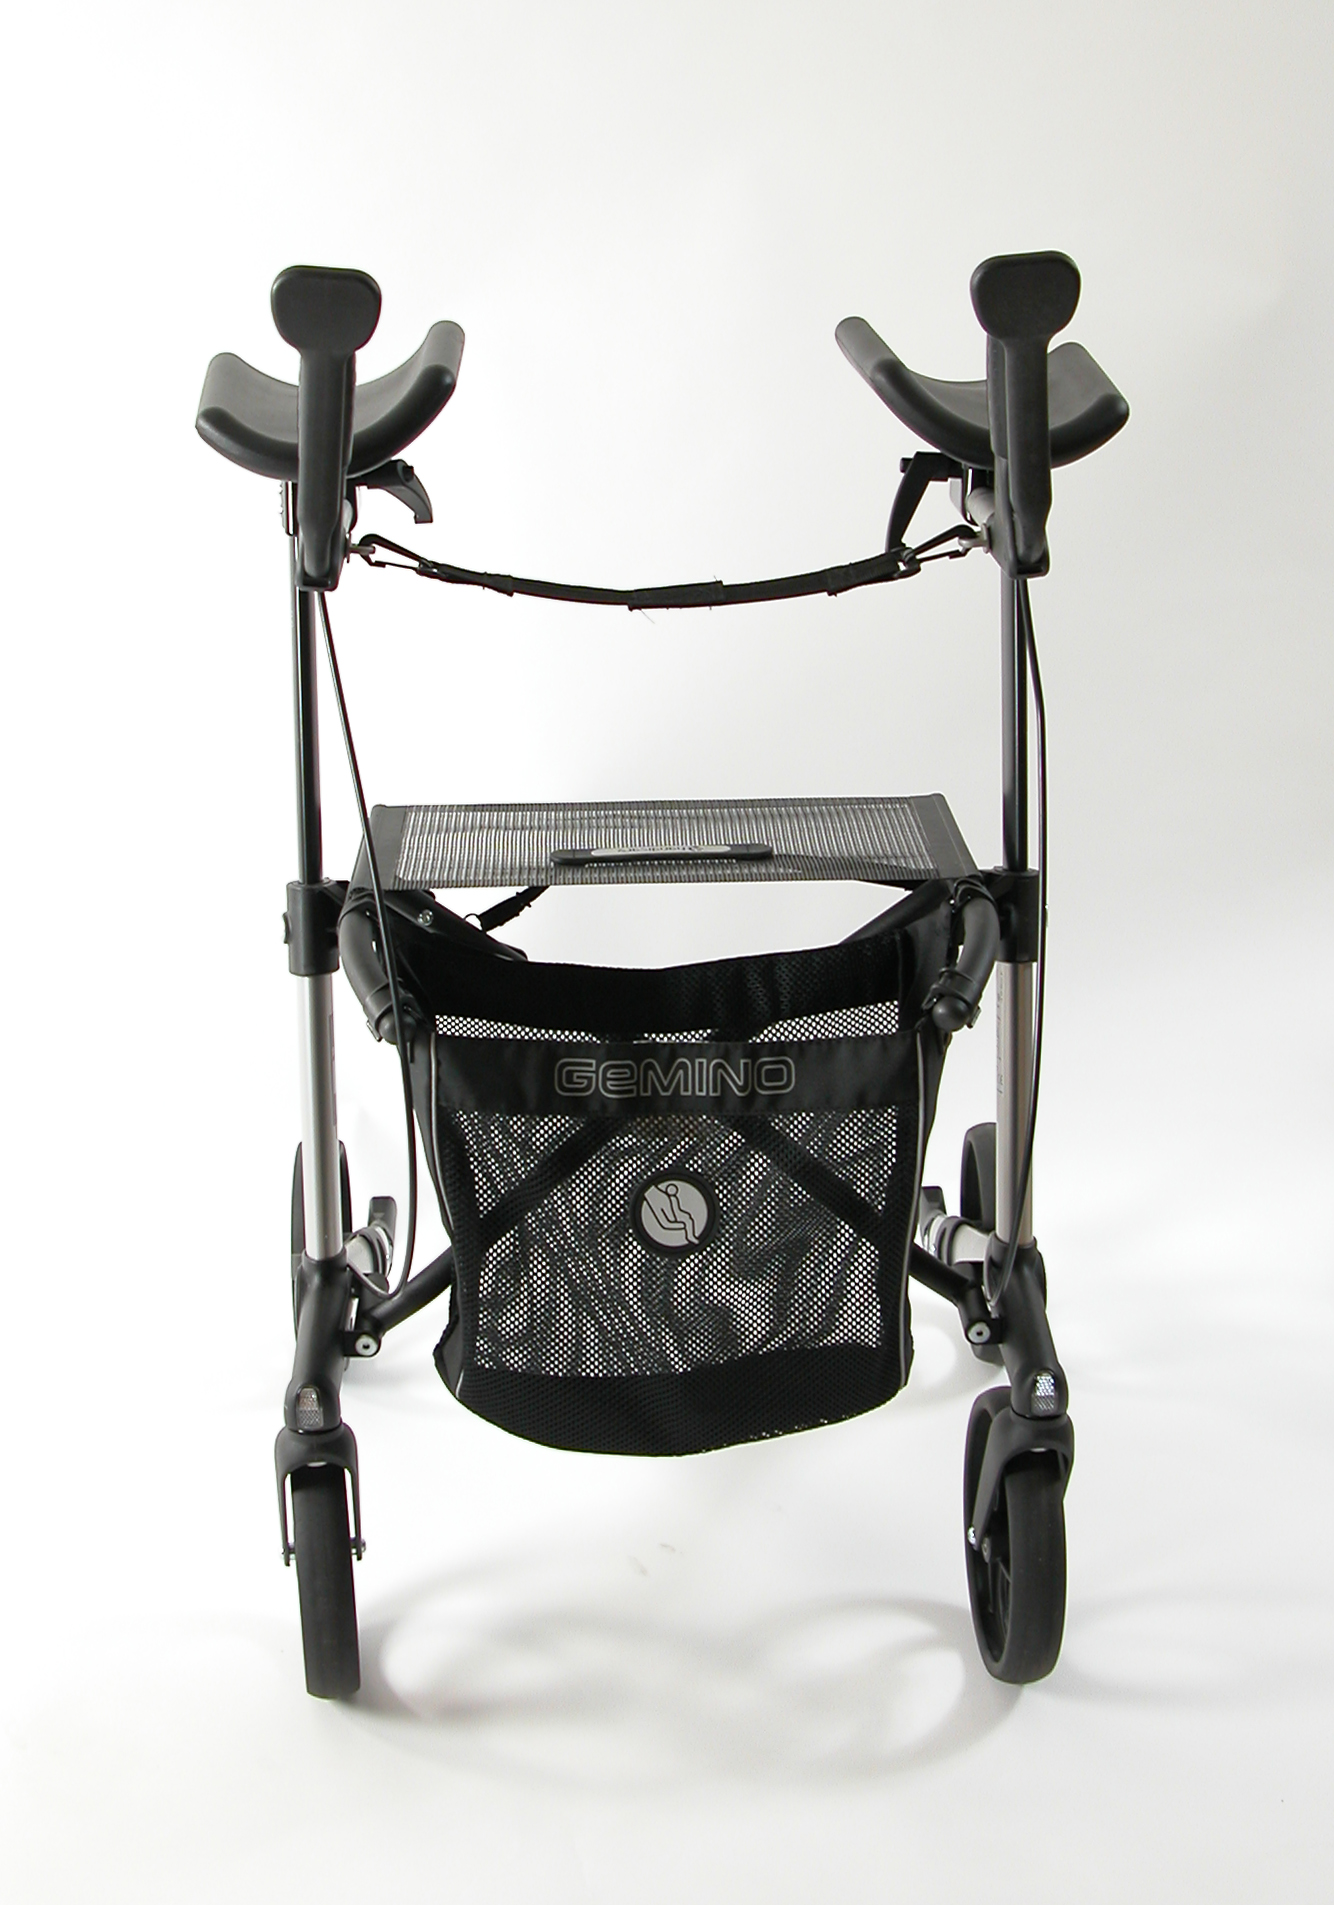 Vooraanzicht Gemino 30 Walker rollator van Sunrise Medical